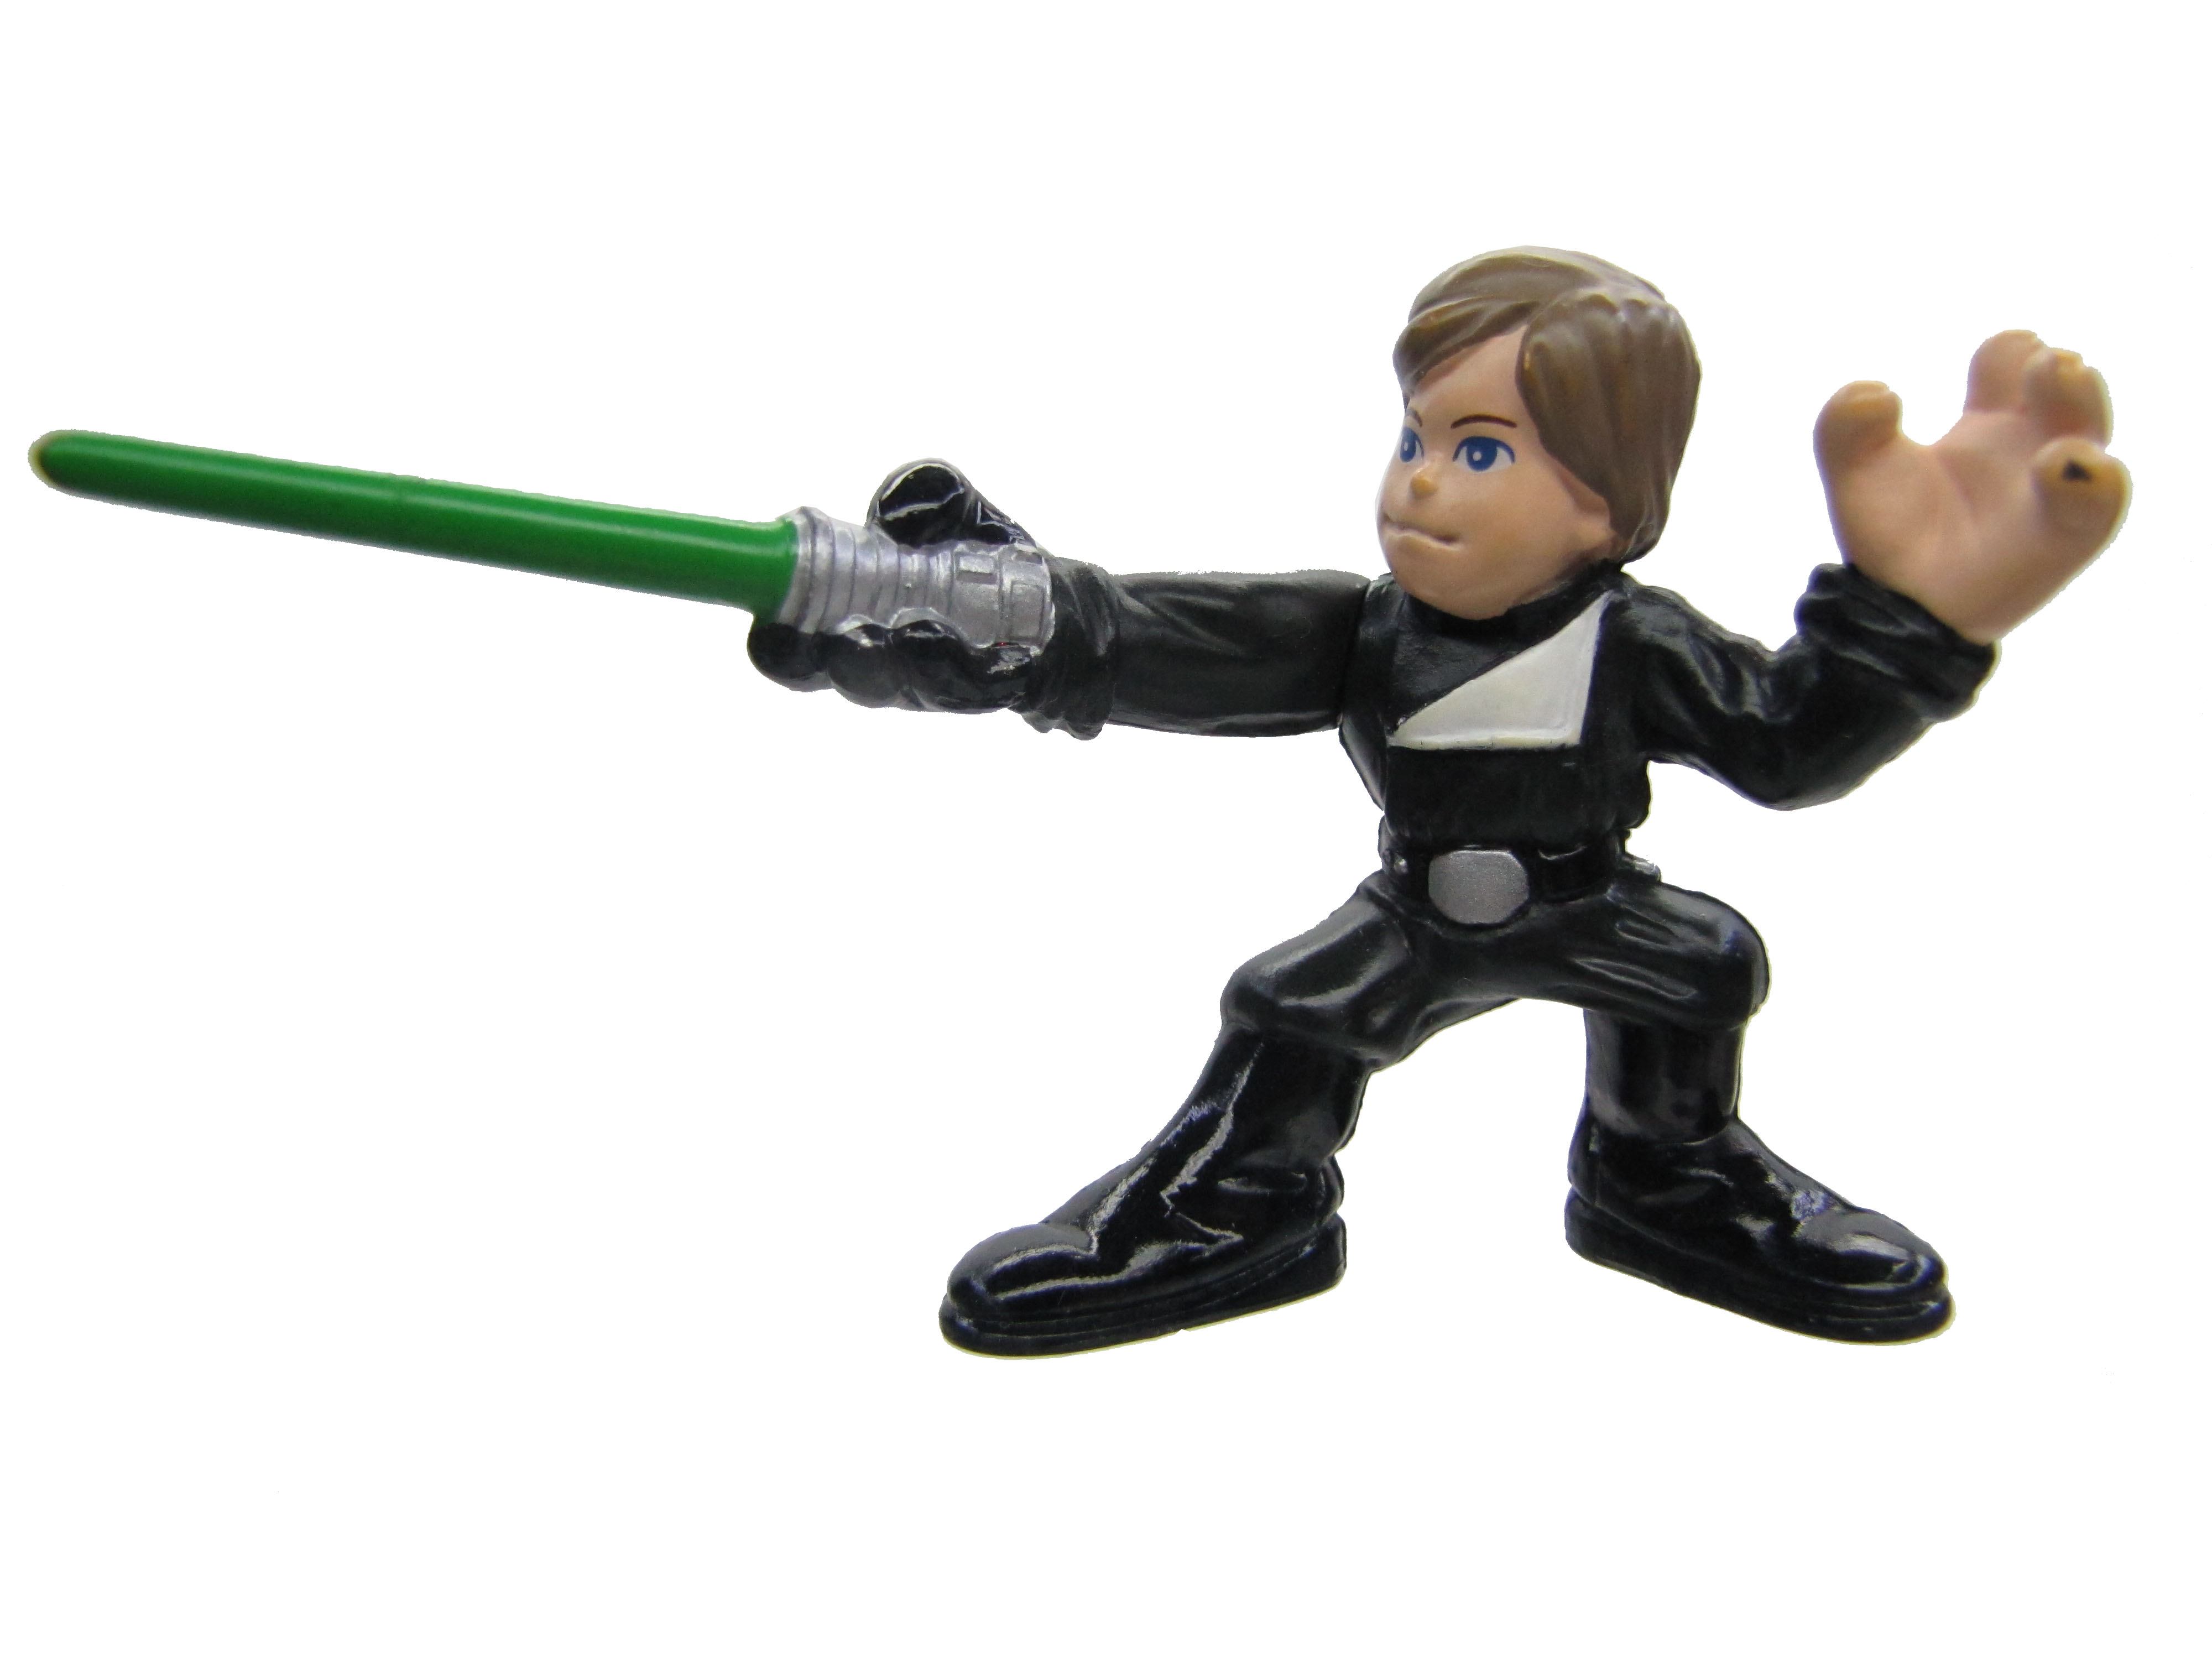 Star Wars Galactic Heroes ENDOR CELEBRATION LUKE SKYWALKER